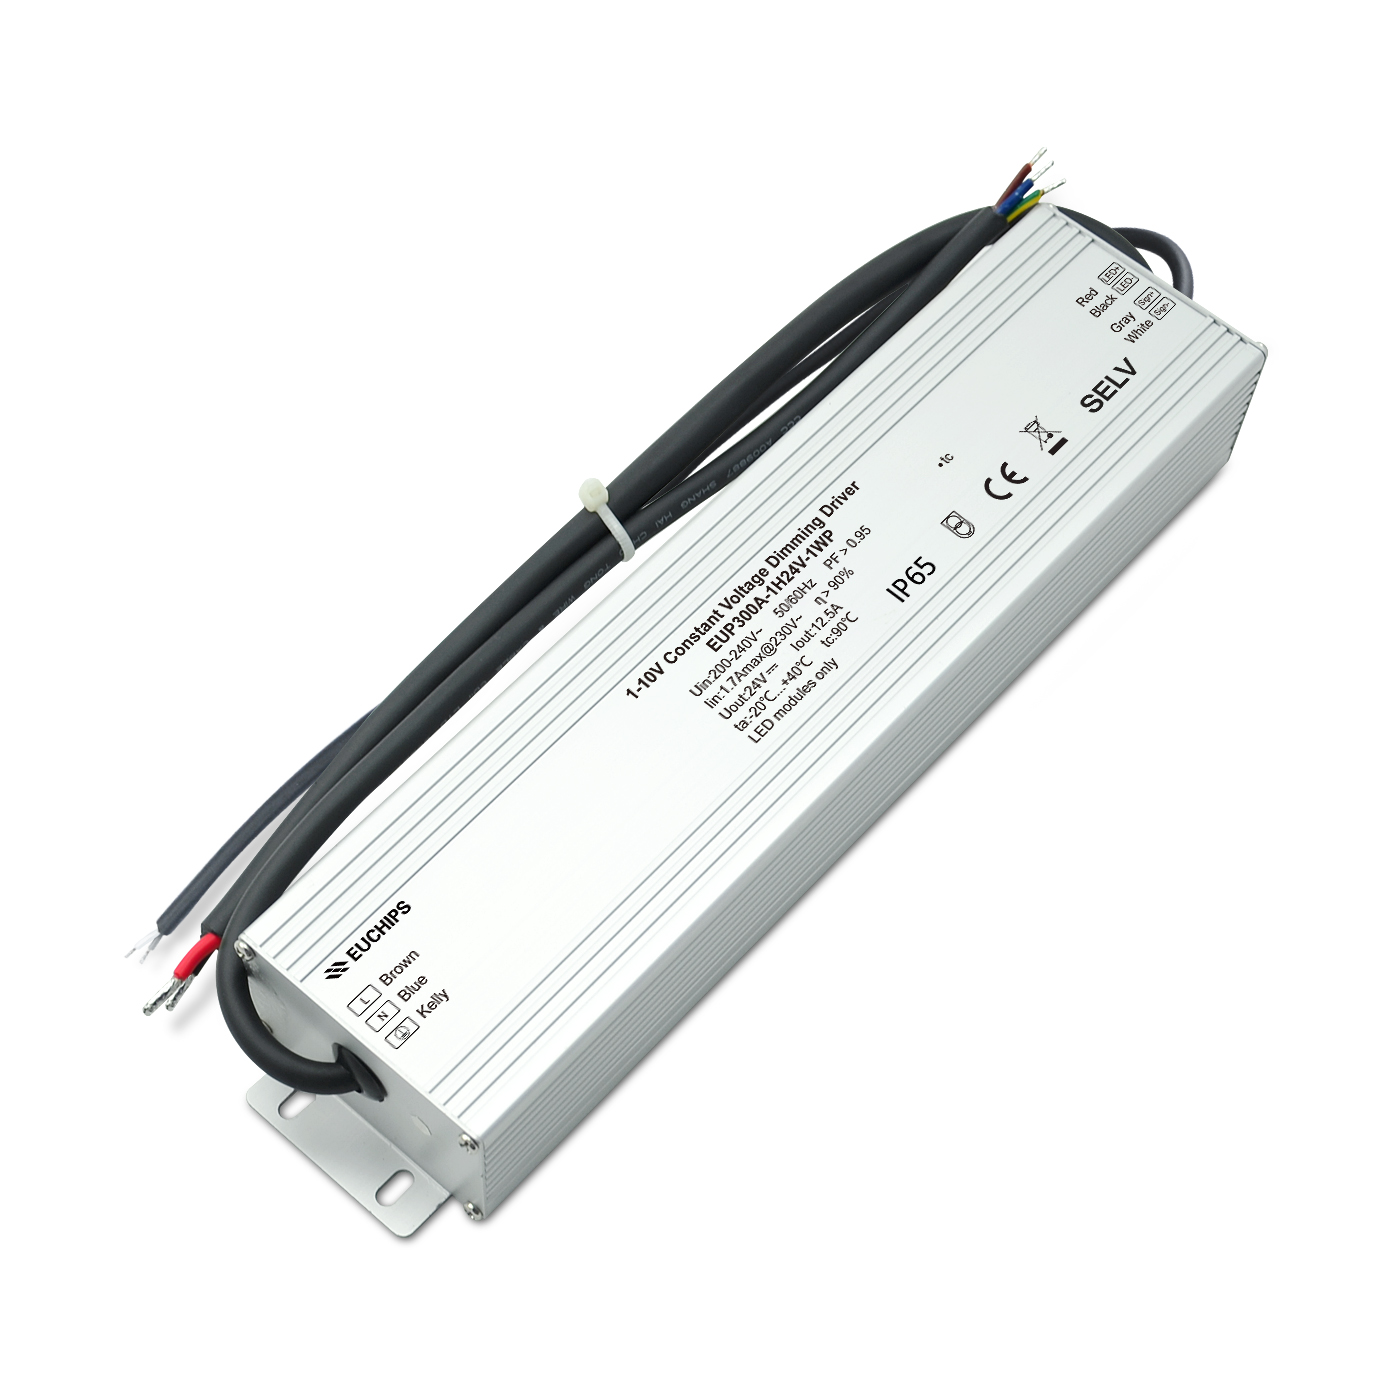 300w 0-10v constant voltage dimmable driver EUP300A-1H24V-0WP Featured Image